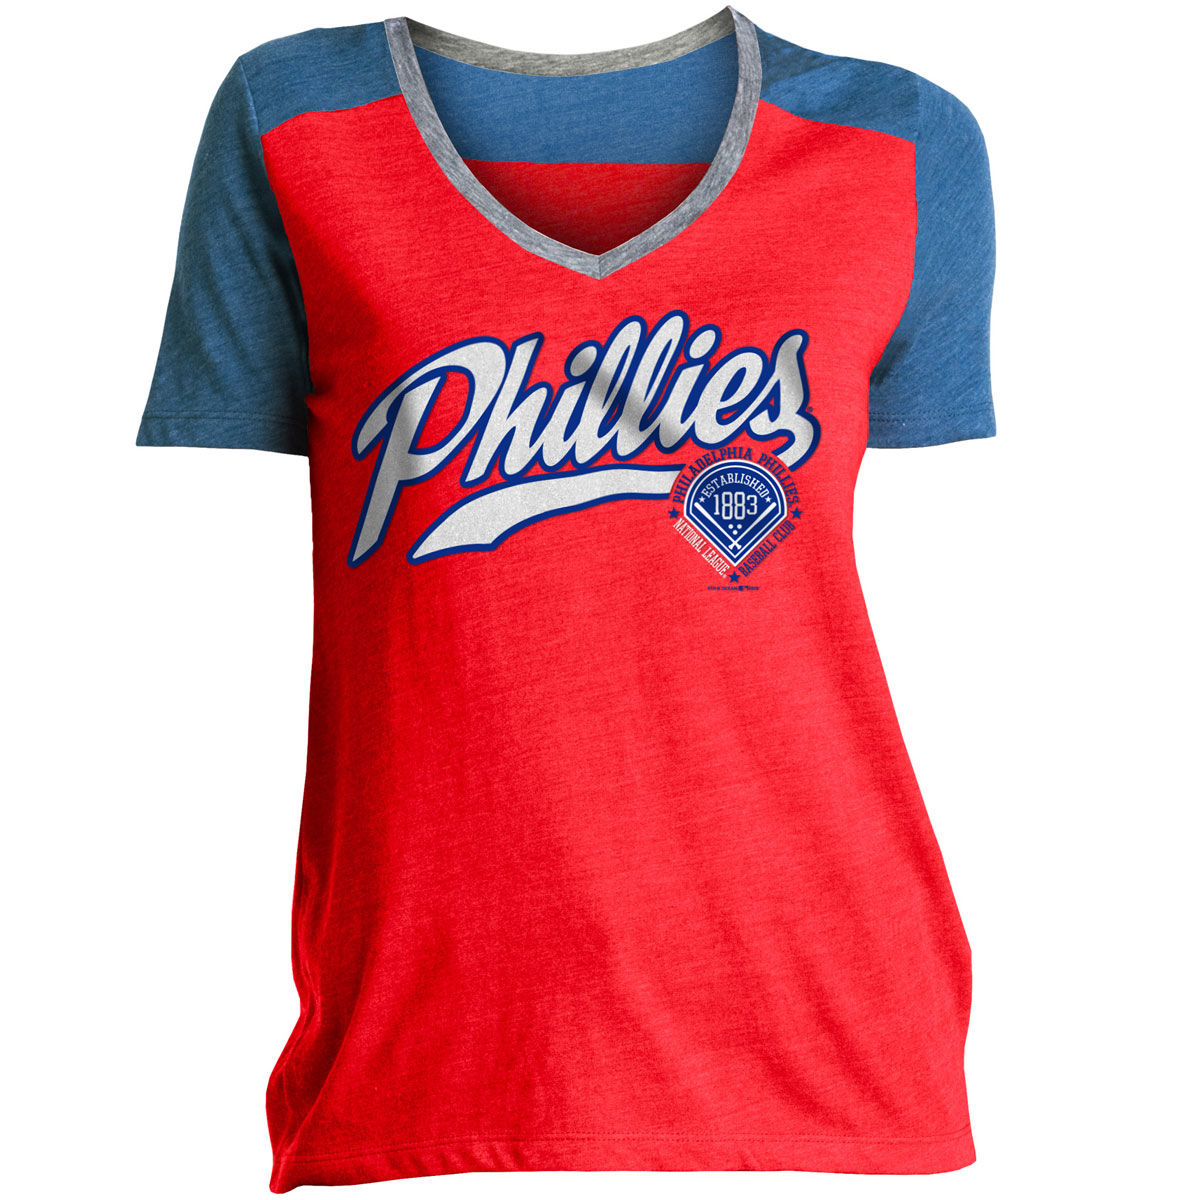 Philadelphia Phillies Womens Graphic T-Shirt